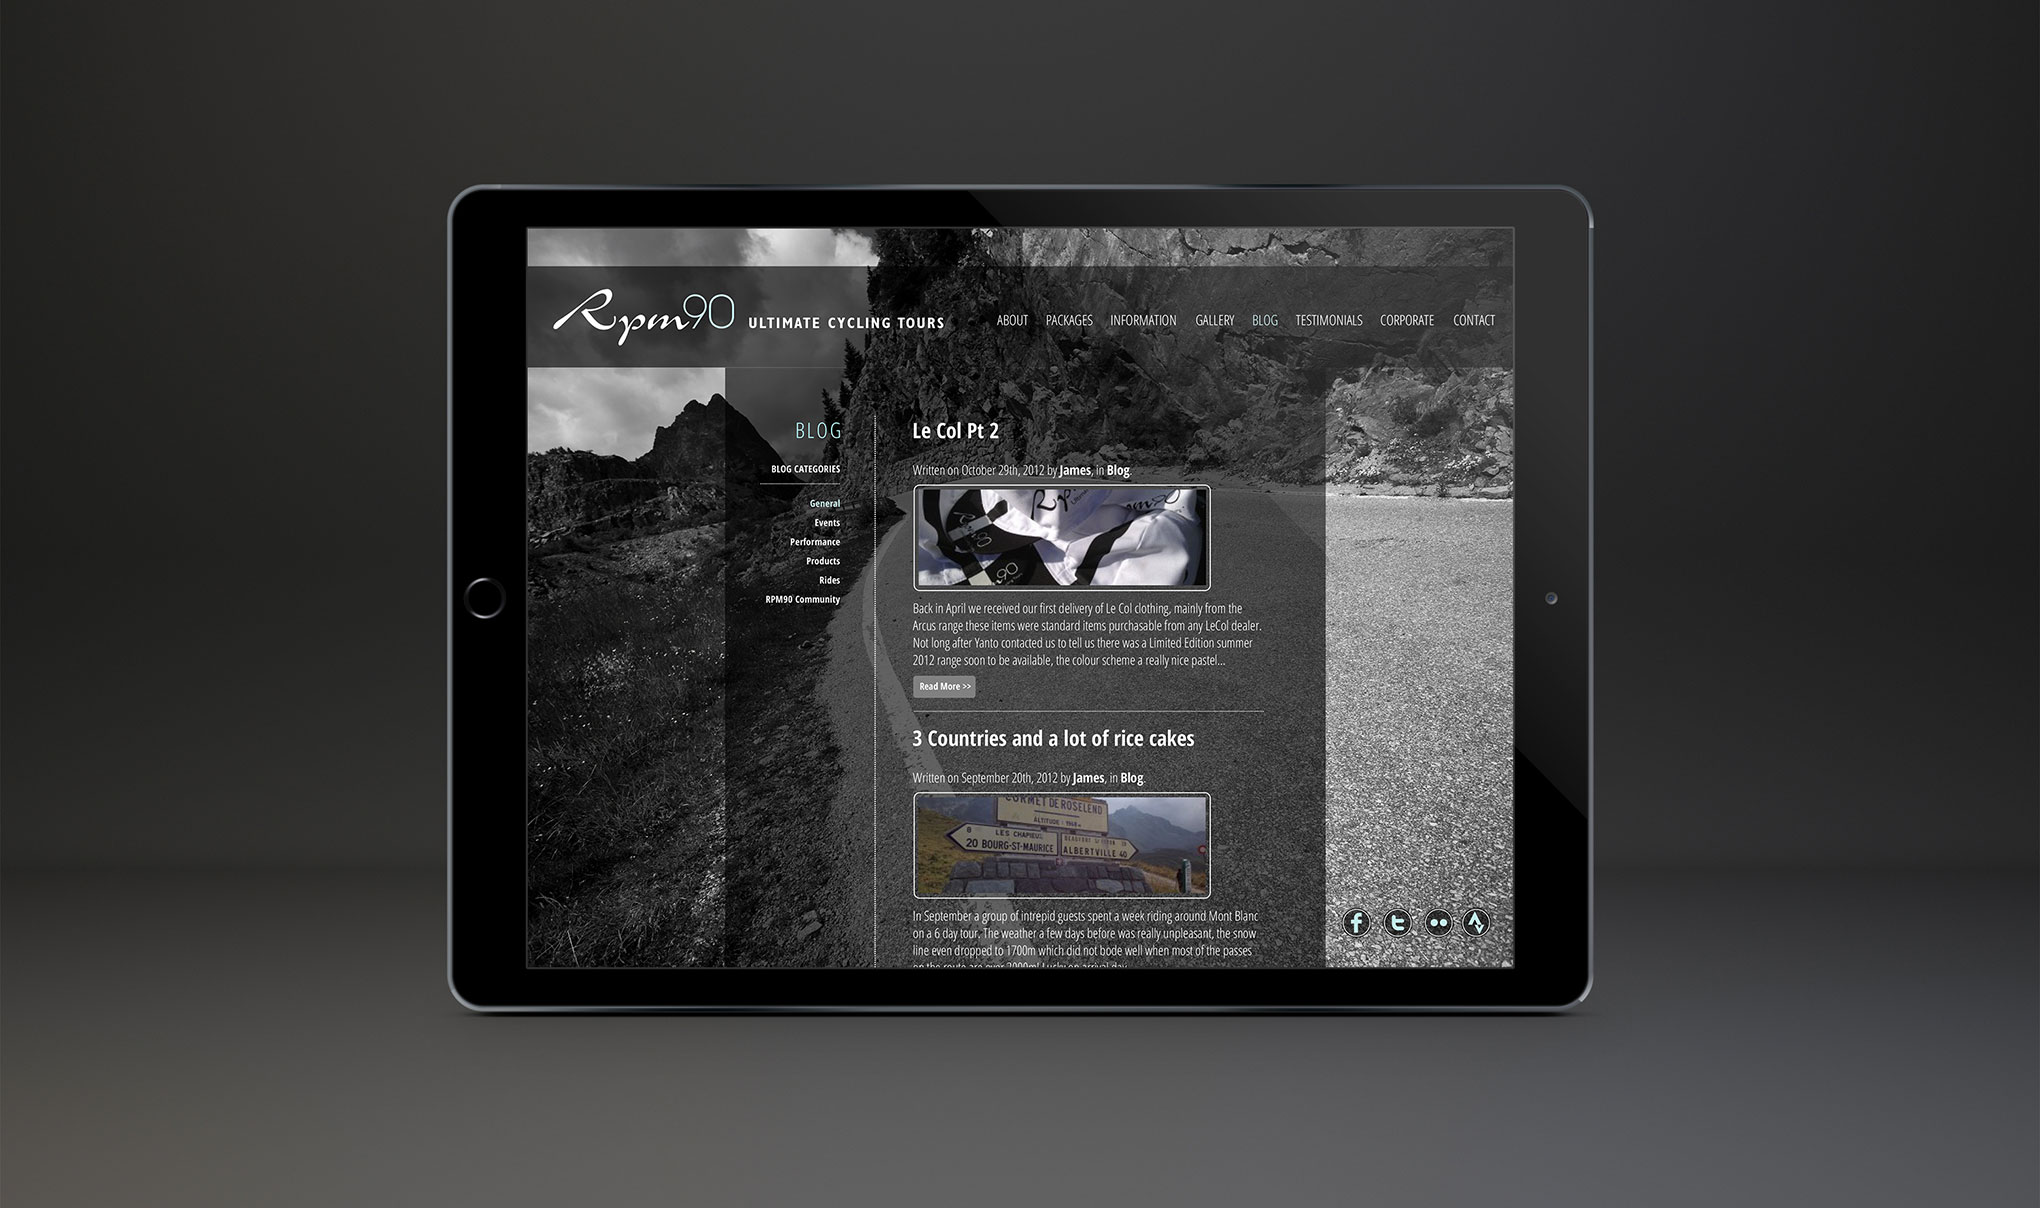 Web Design for RPM90 cycling holidays - Blog page.